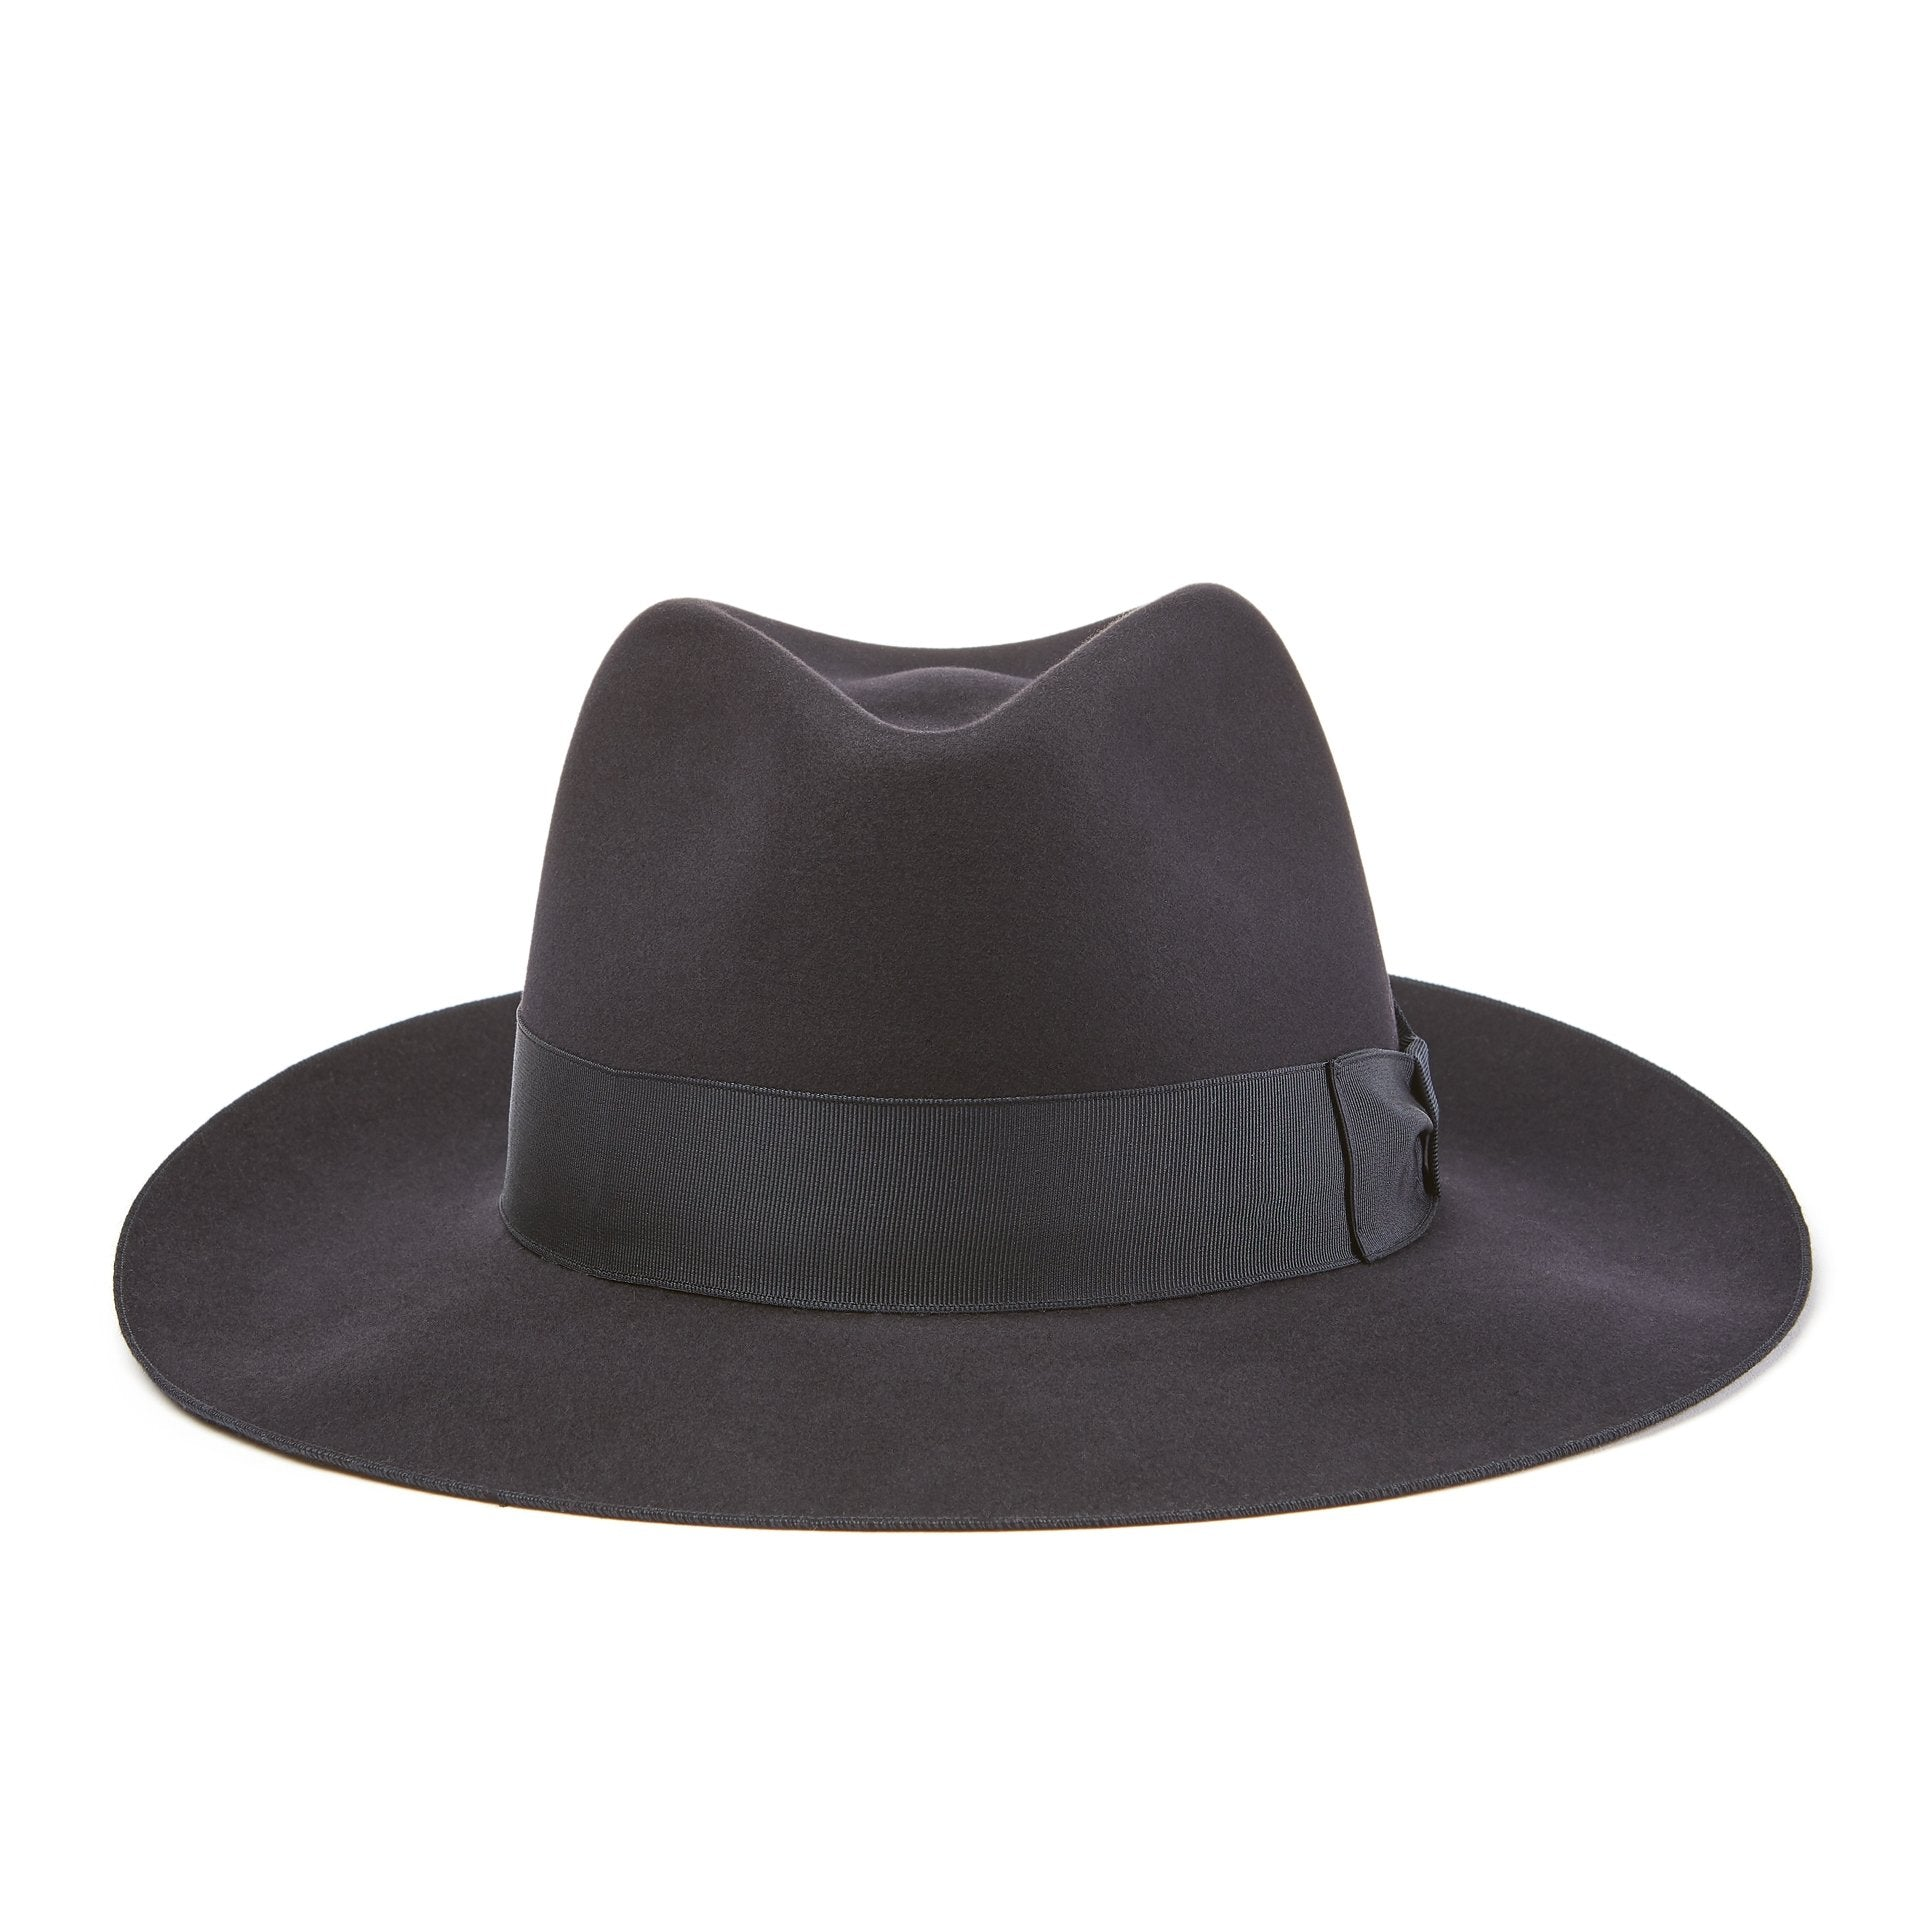 Dreadnought fedora - Fedoras & homburgs - Lock & Co. Hatters London UK